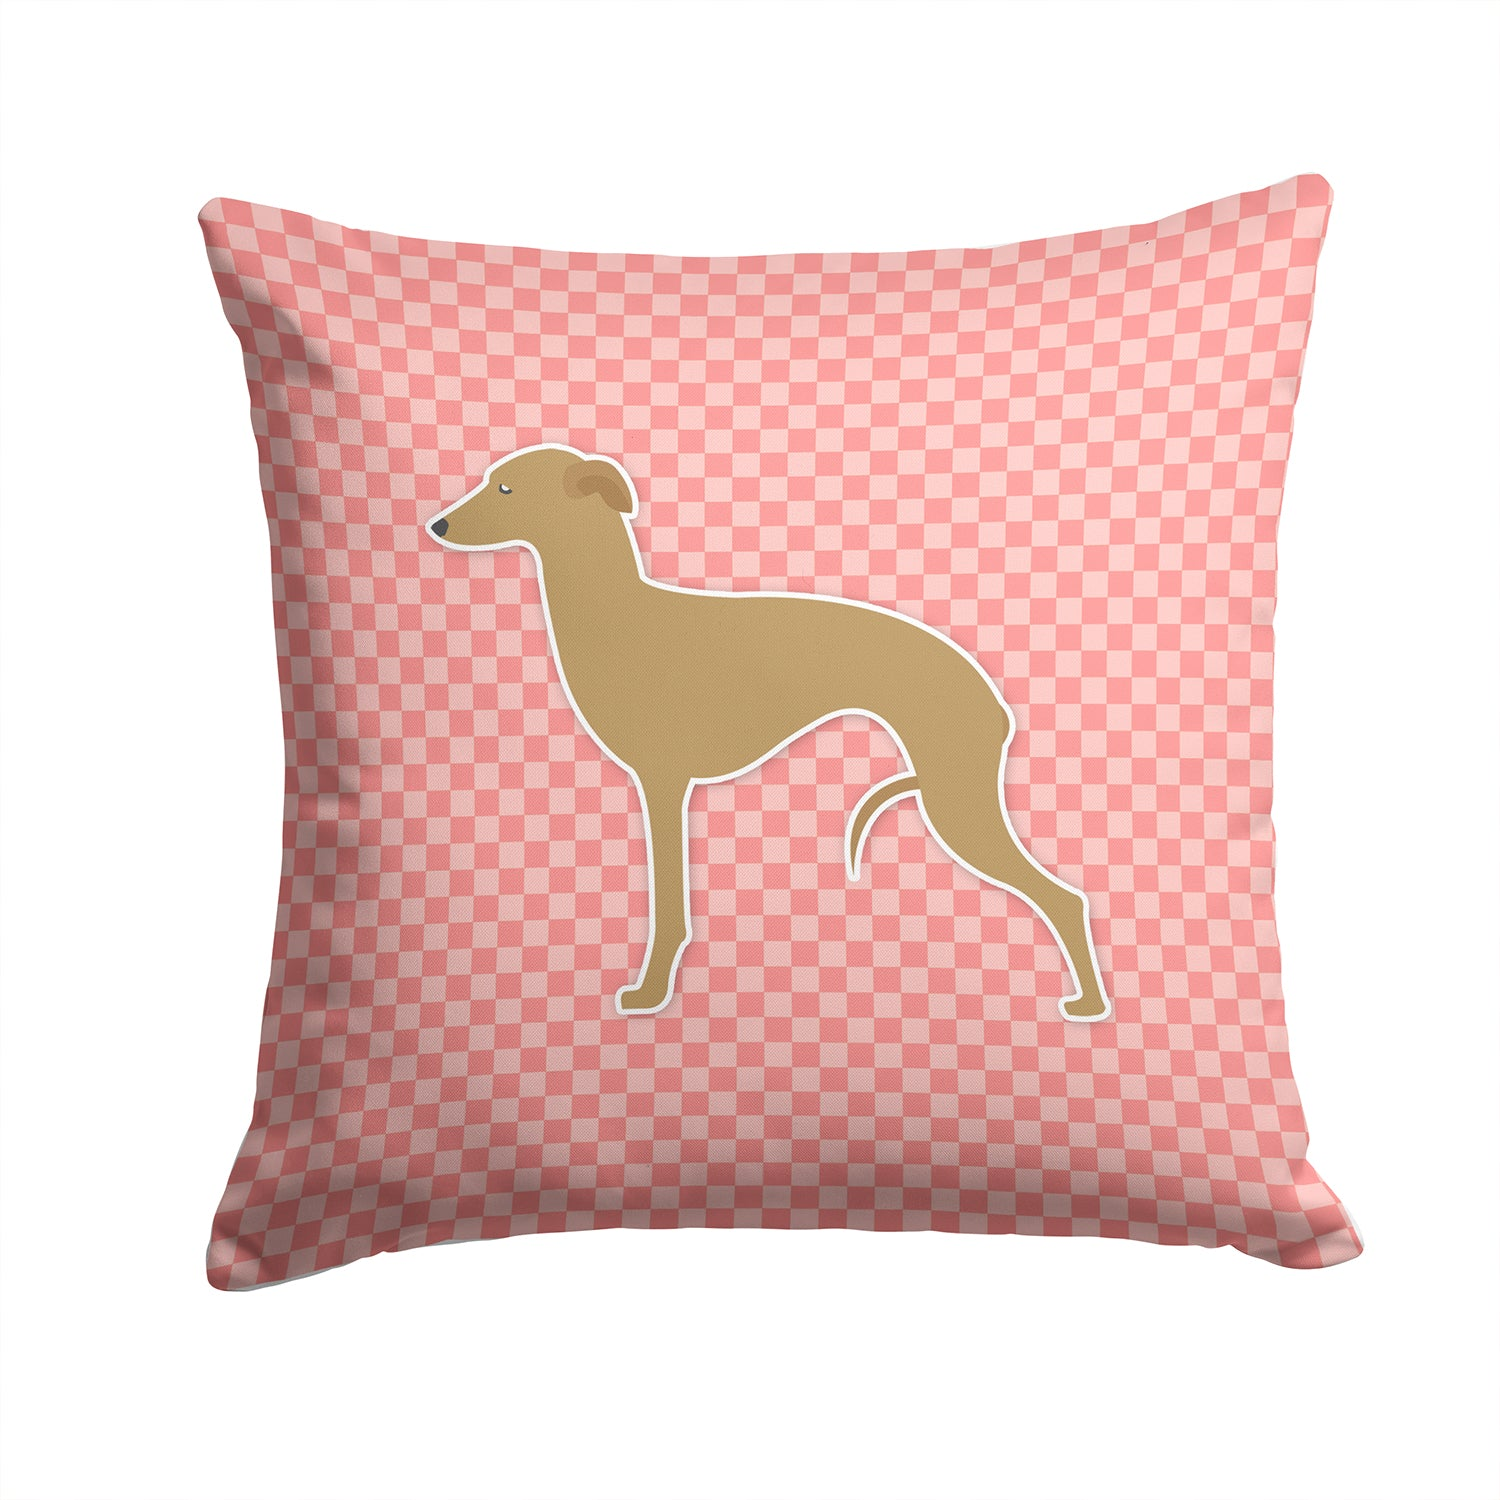 Italian Greyhound Checkerboard Pink Fabric Decorative Pillow BB3614PW1414 by Caroline's Treasures